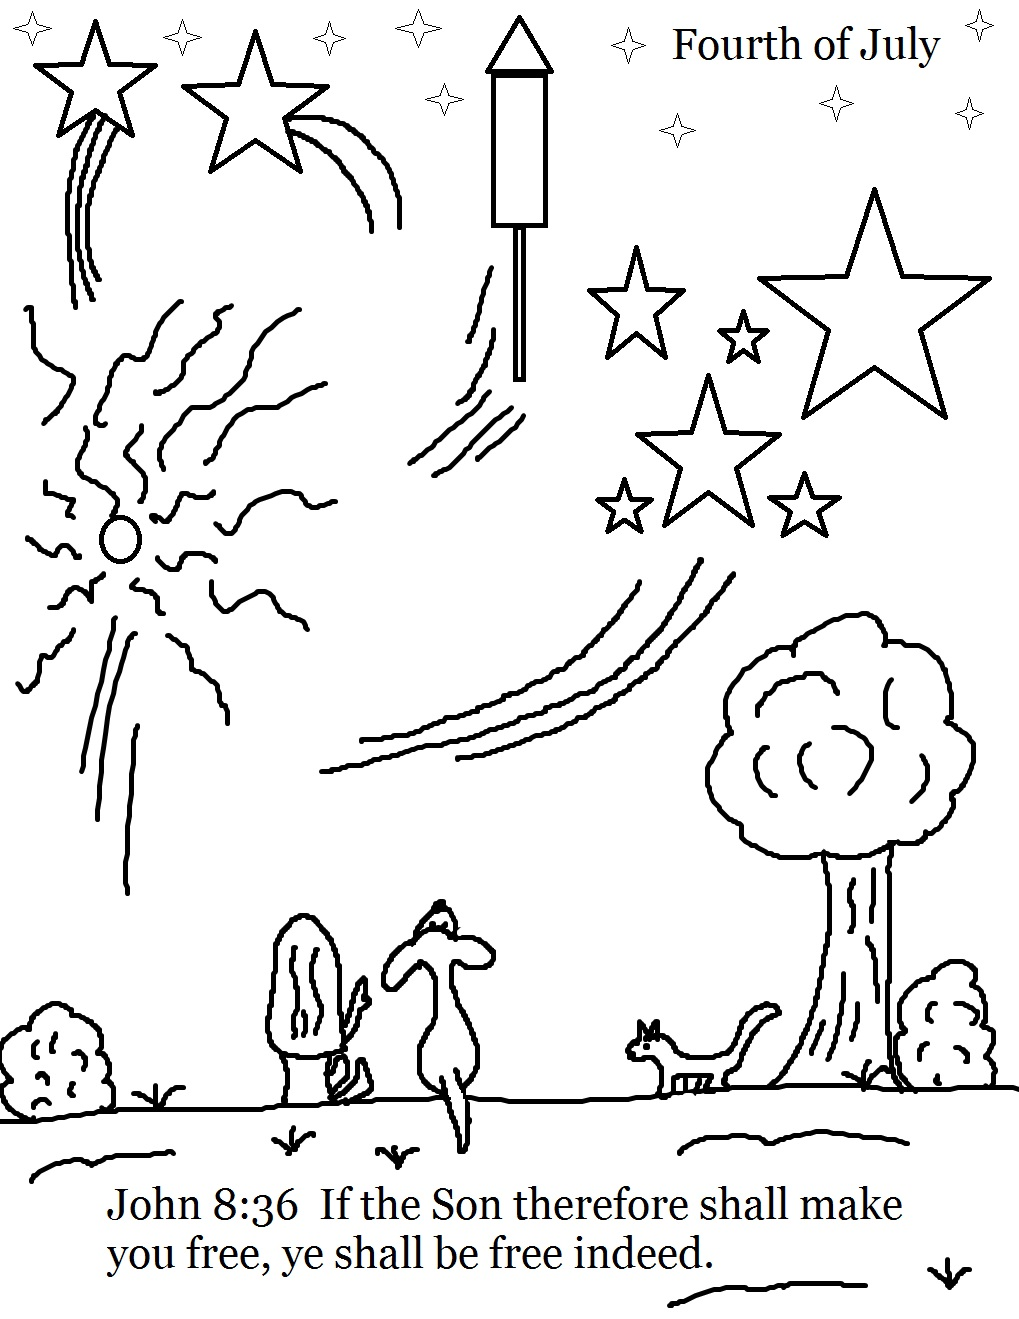 Coloring pages july - Coloring Pages July 4th Coloring Page Download